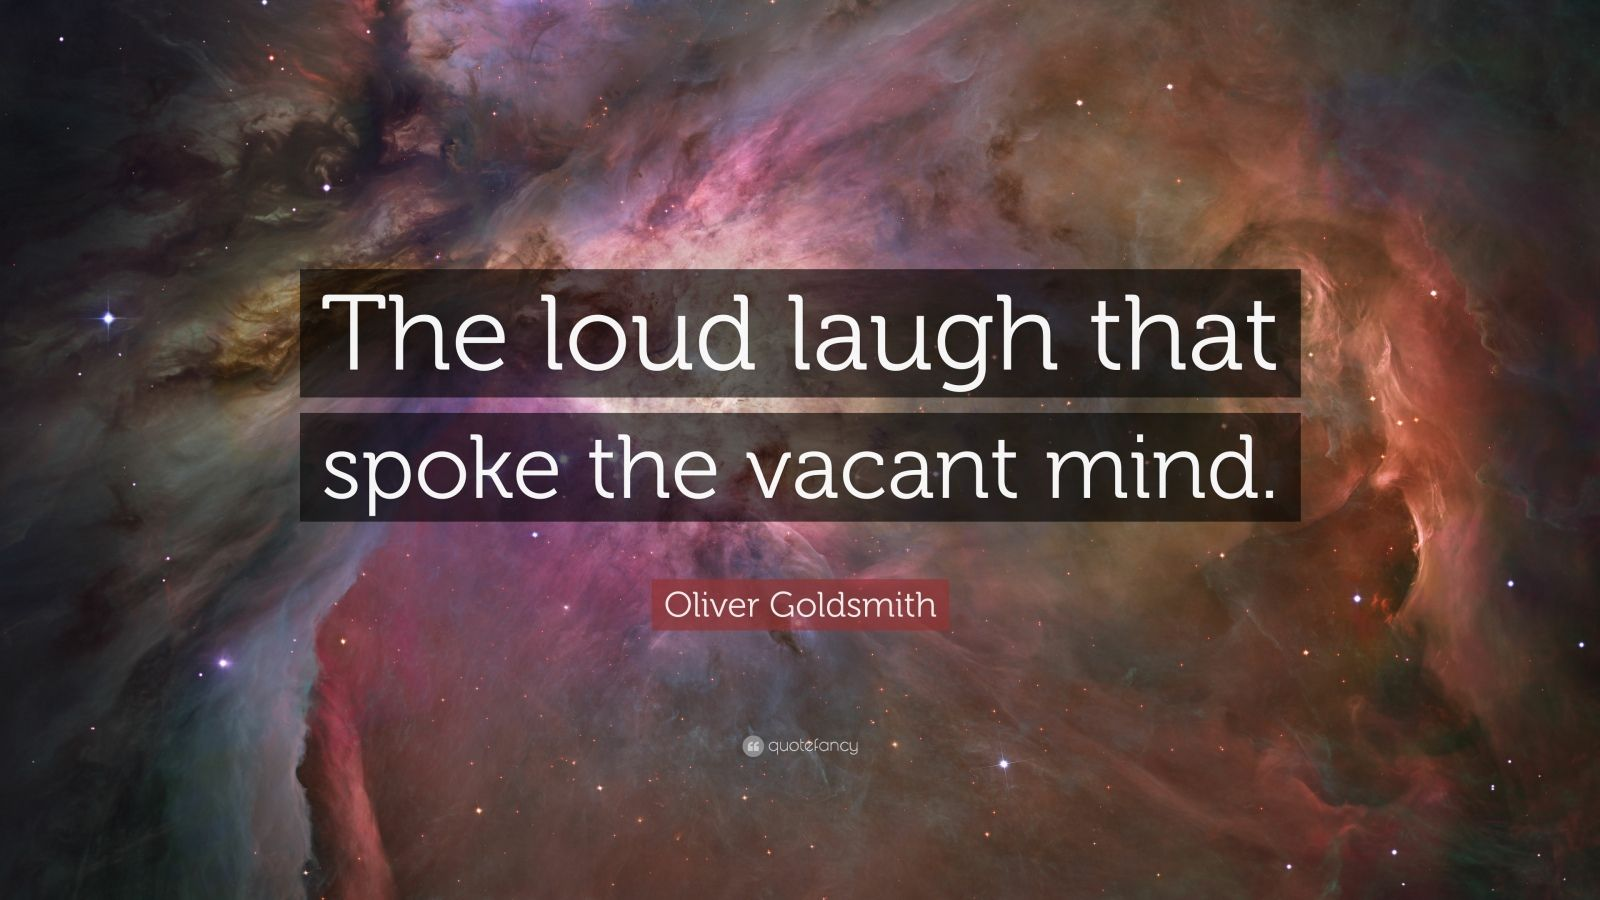 Loud Laugh Speaks Vacant Mind